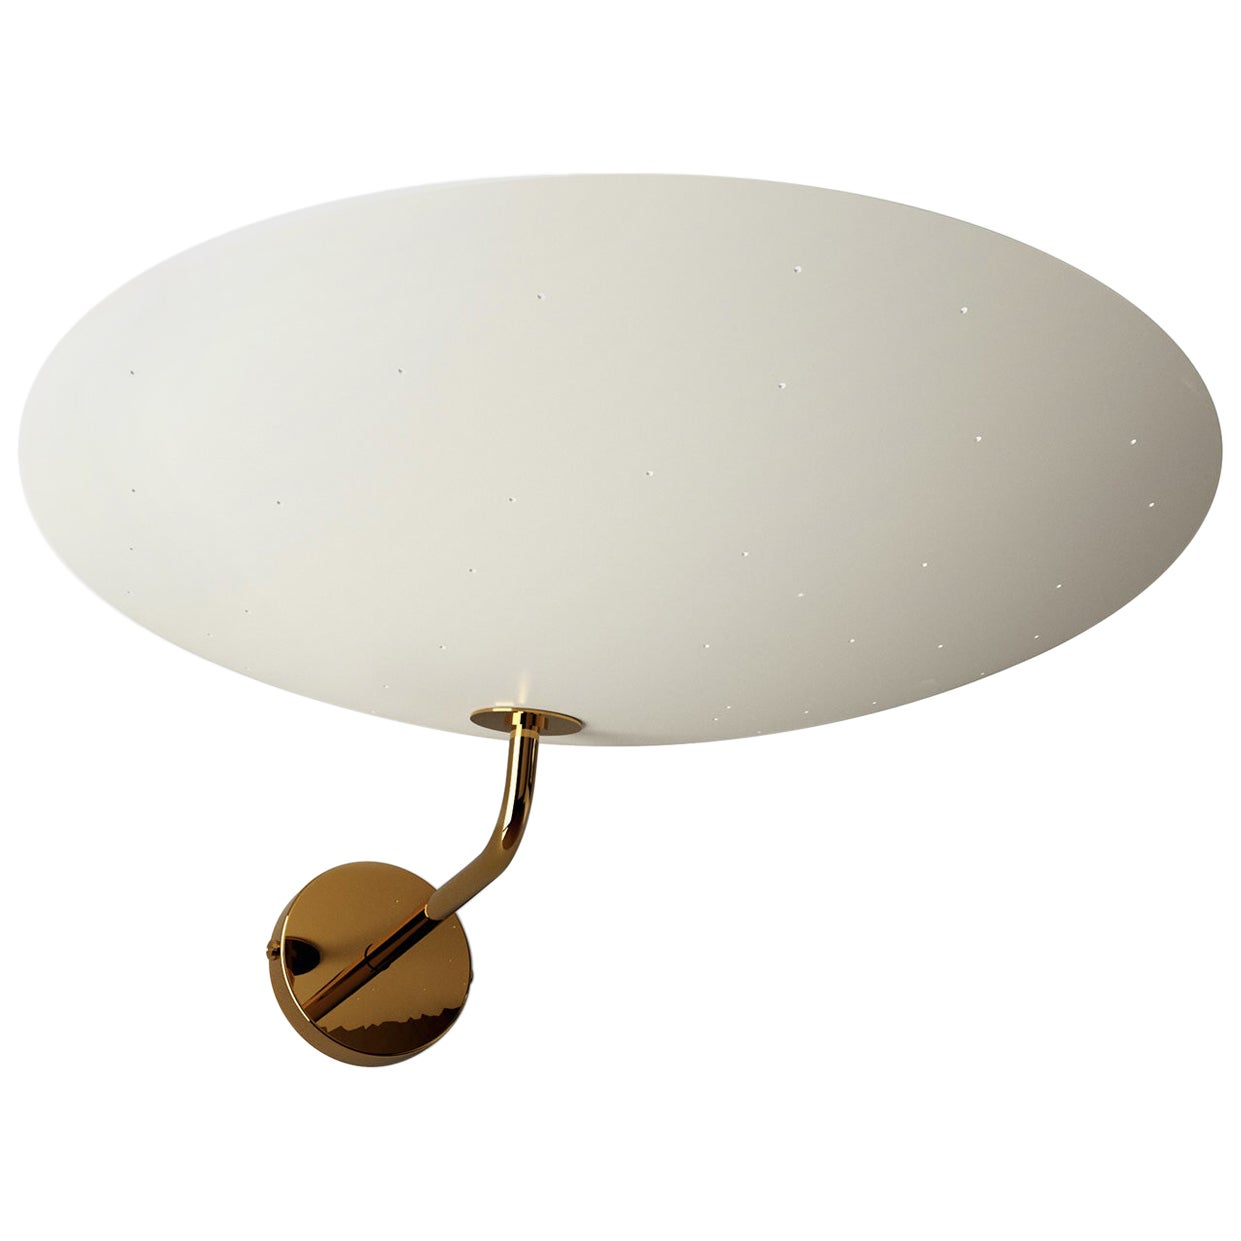 Pierre Disderot Model #2059 Large Perforated Wall Lamp in White & Polished Brass